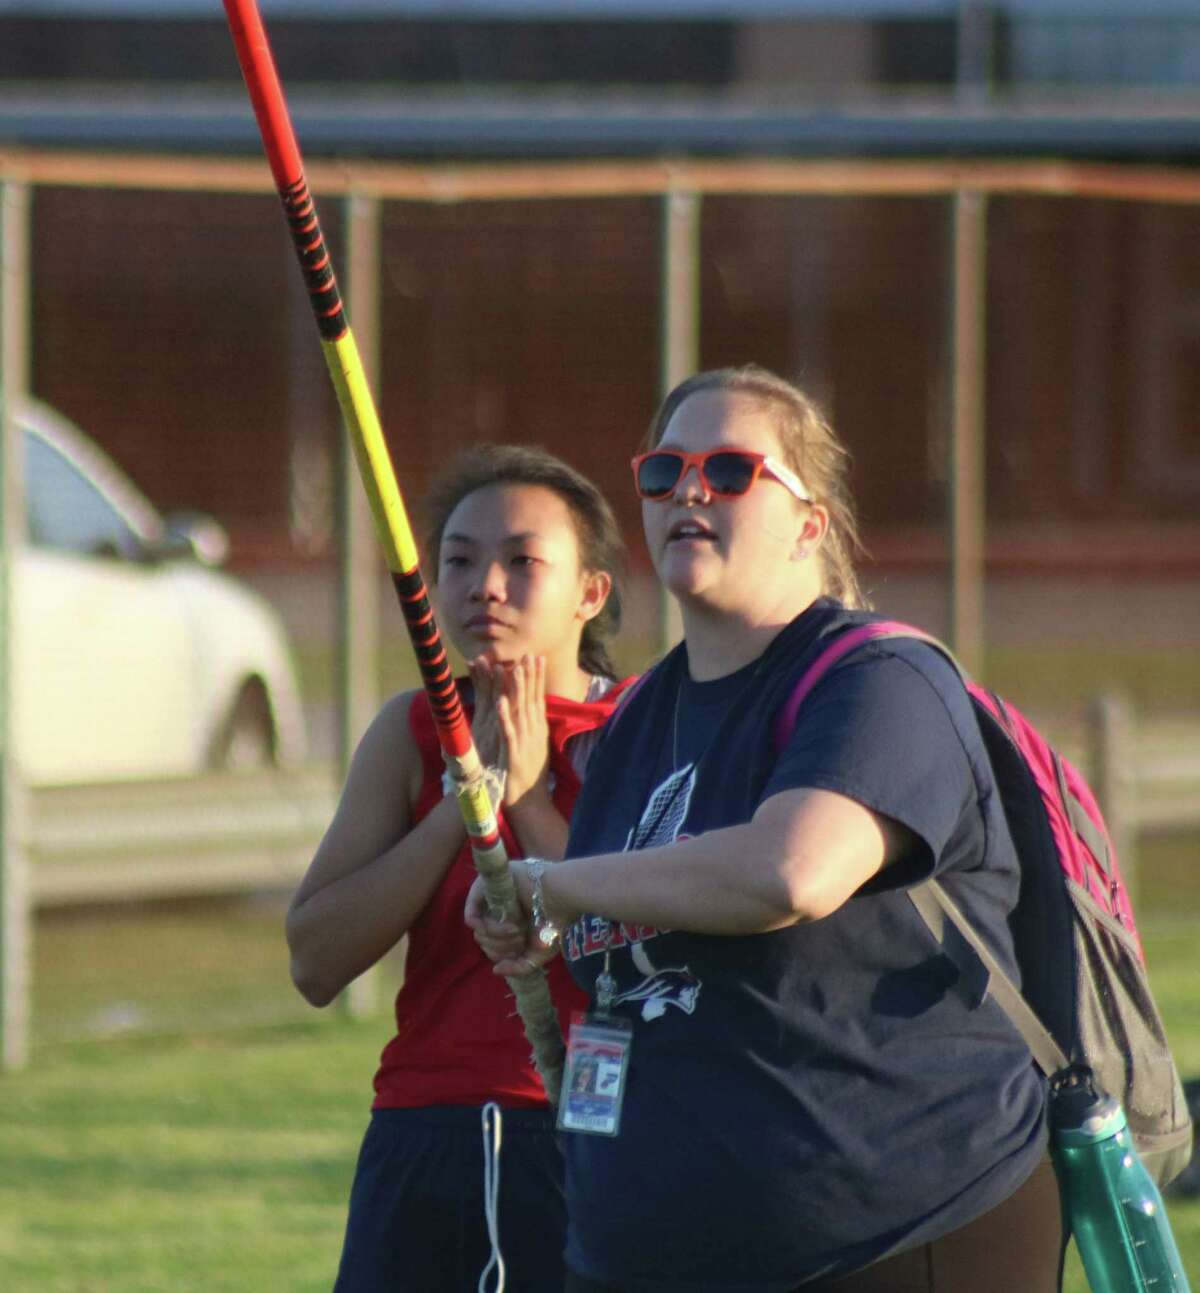 No, Bondy coach Michelle Nettles isn't about to pole vault. But she is trying to give Holly Tran a pointer before Tran attempts another vault during the intermediate school district track meet. Tran captured the district title at 5-6.